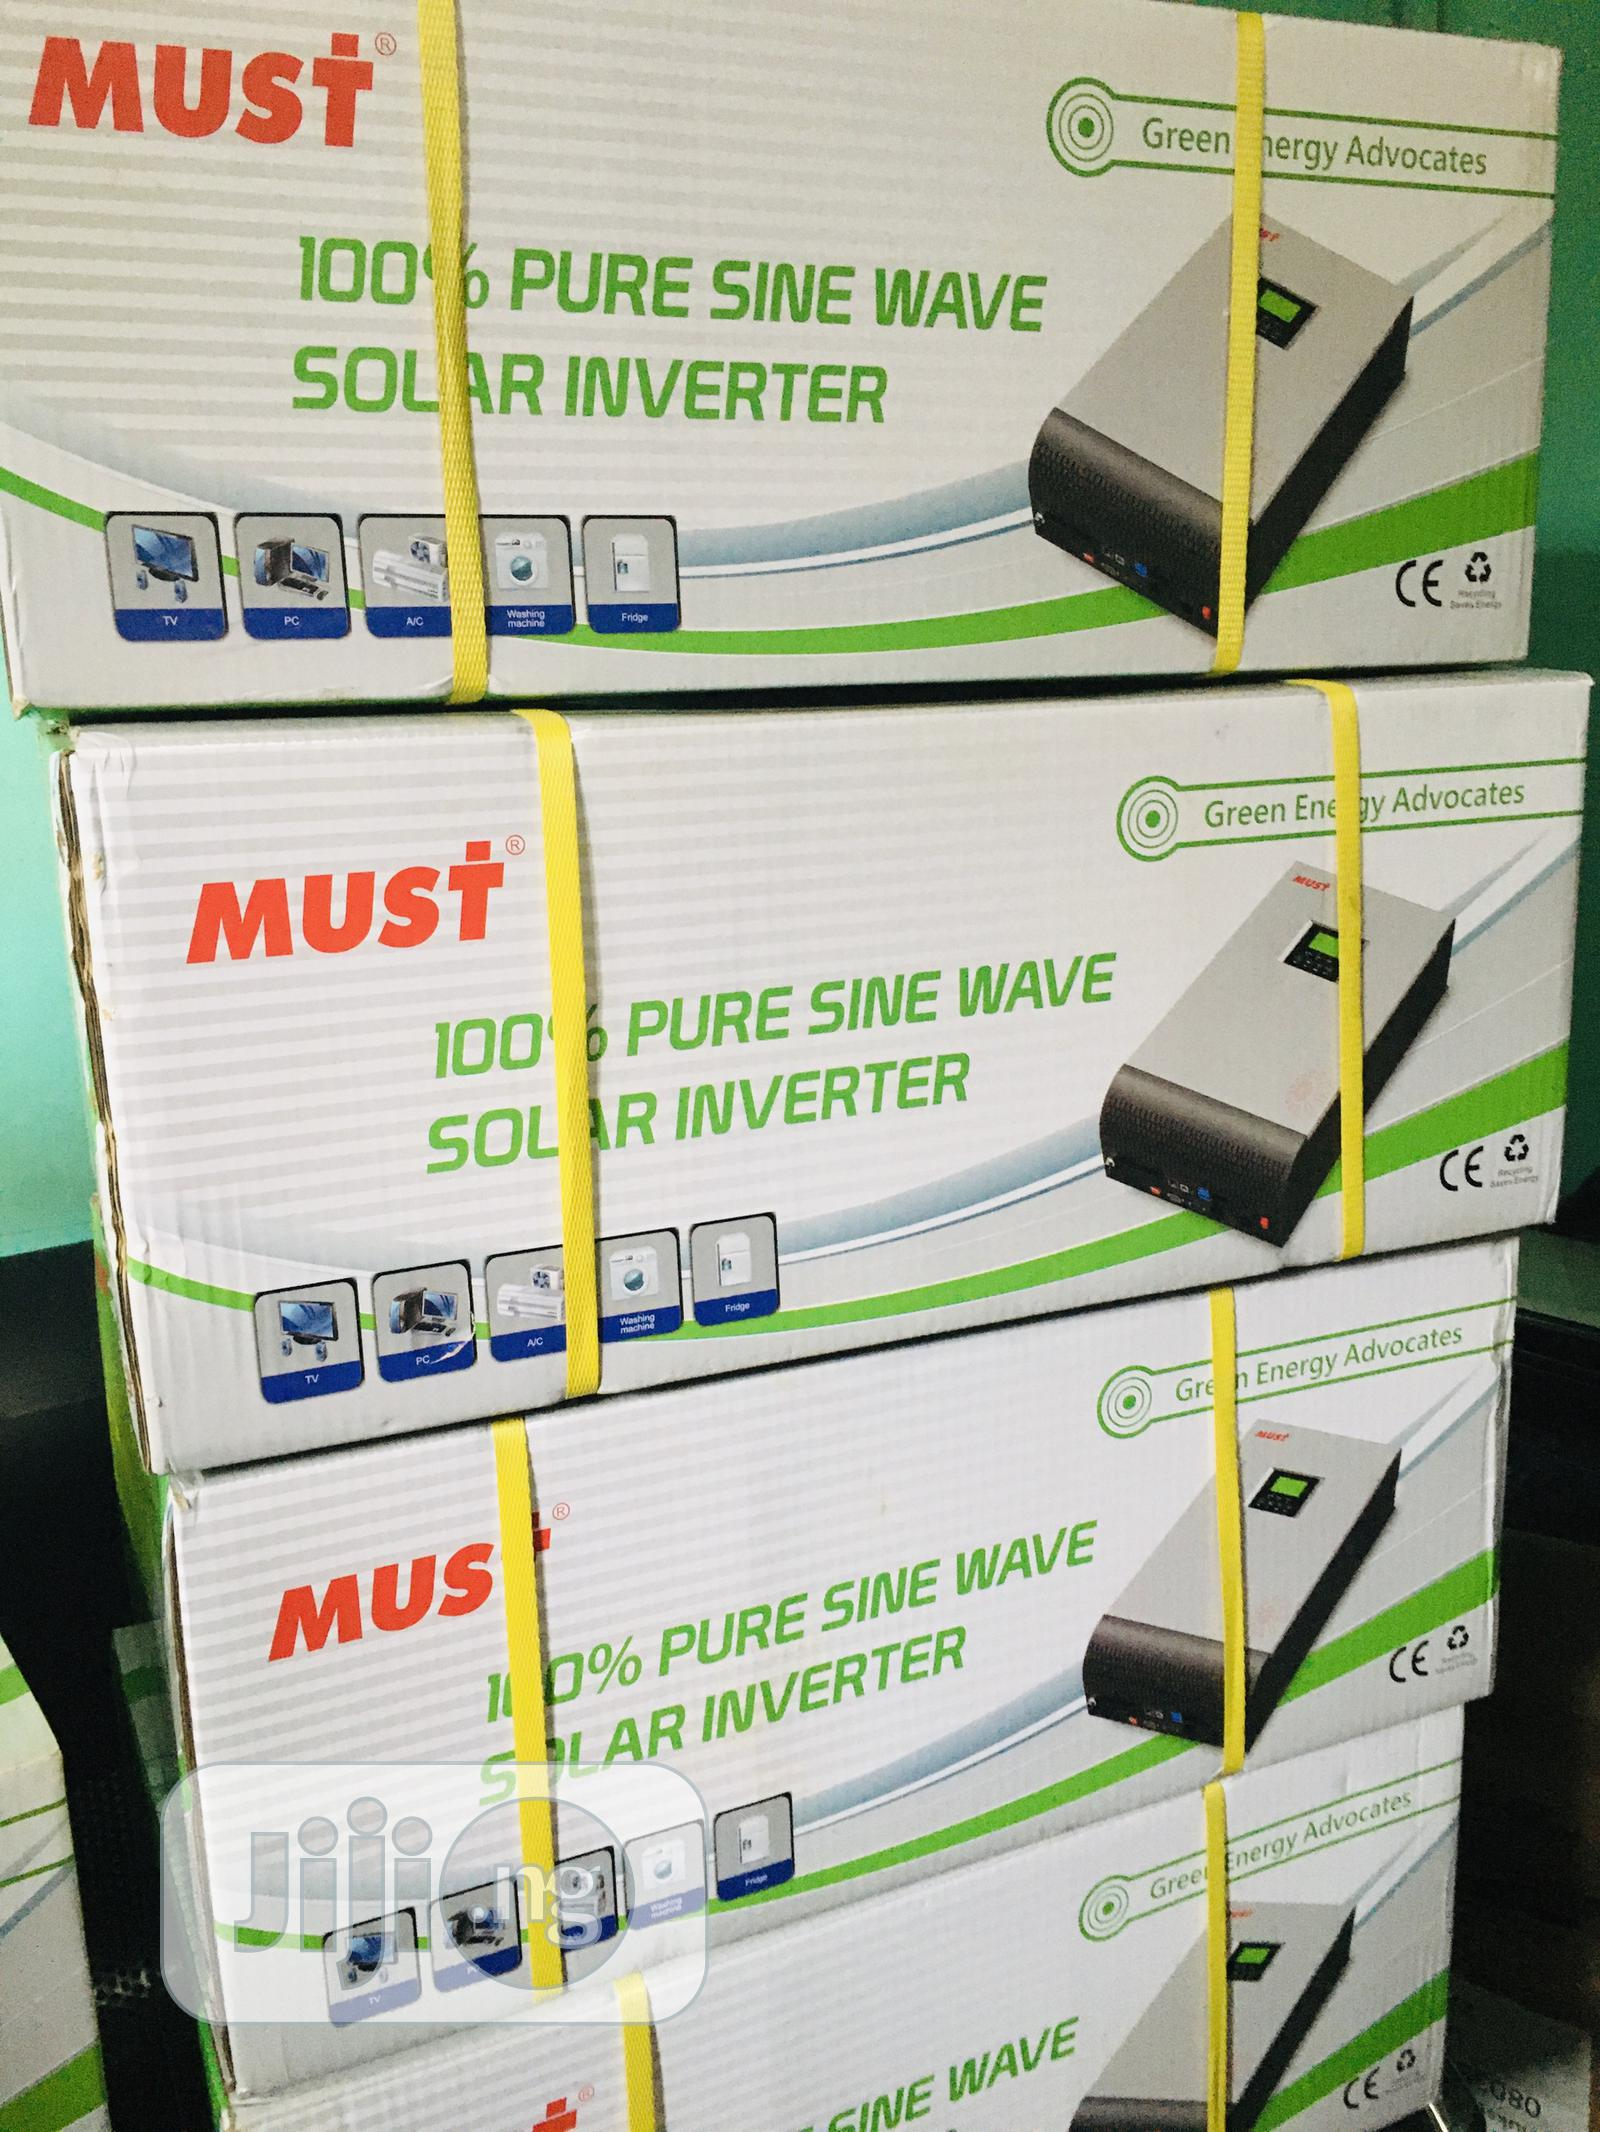 5kva 48v MUST Hybrid Inverter Available With 1yr Warranty